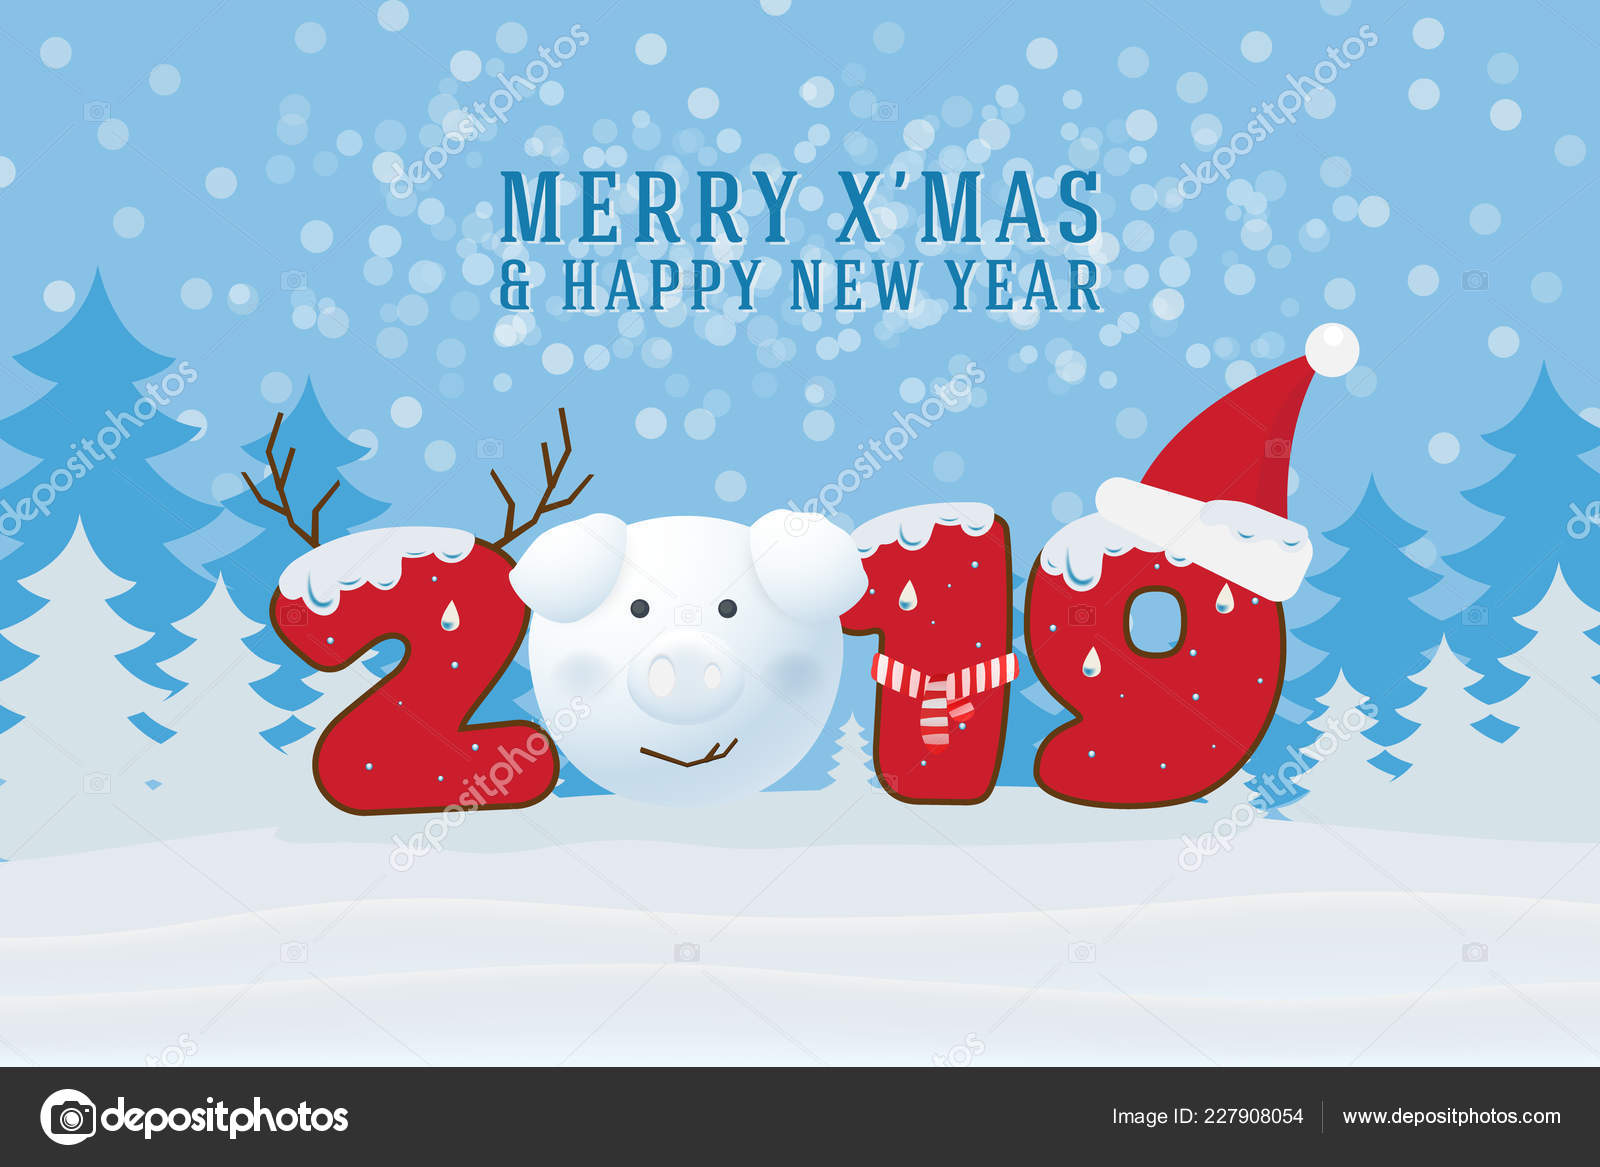 Merry Christmas Happy New Year 2019 Christmas Greeting Card ...